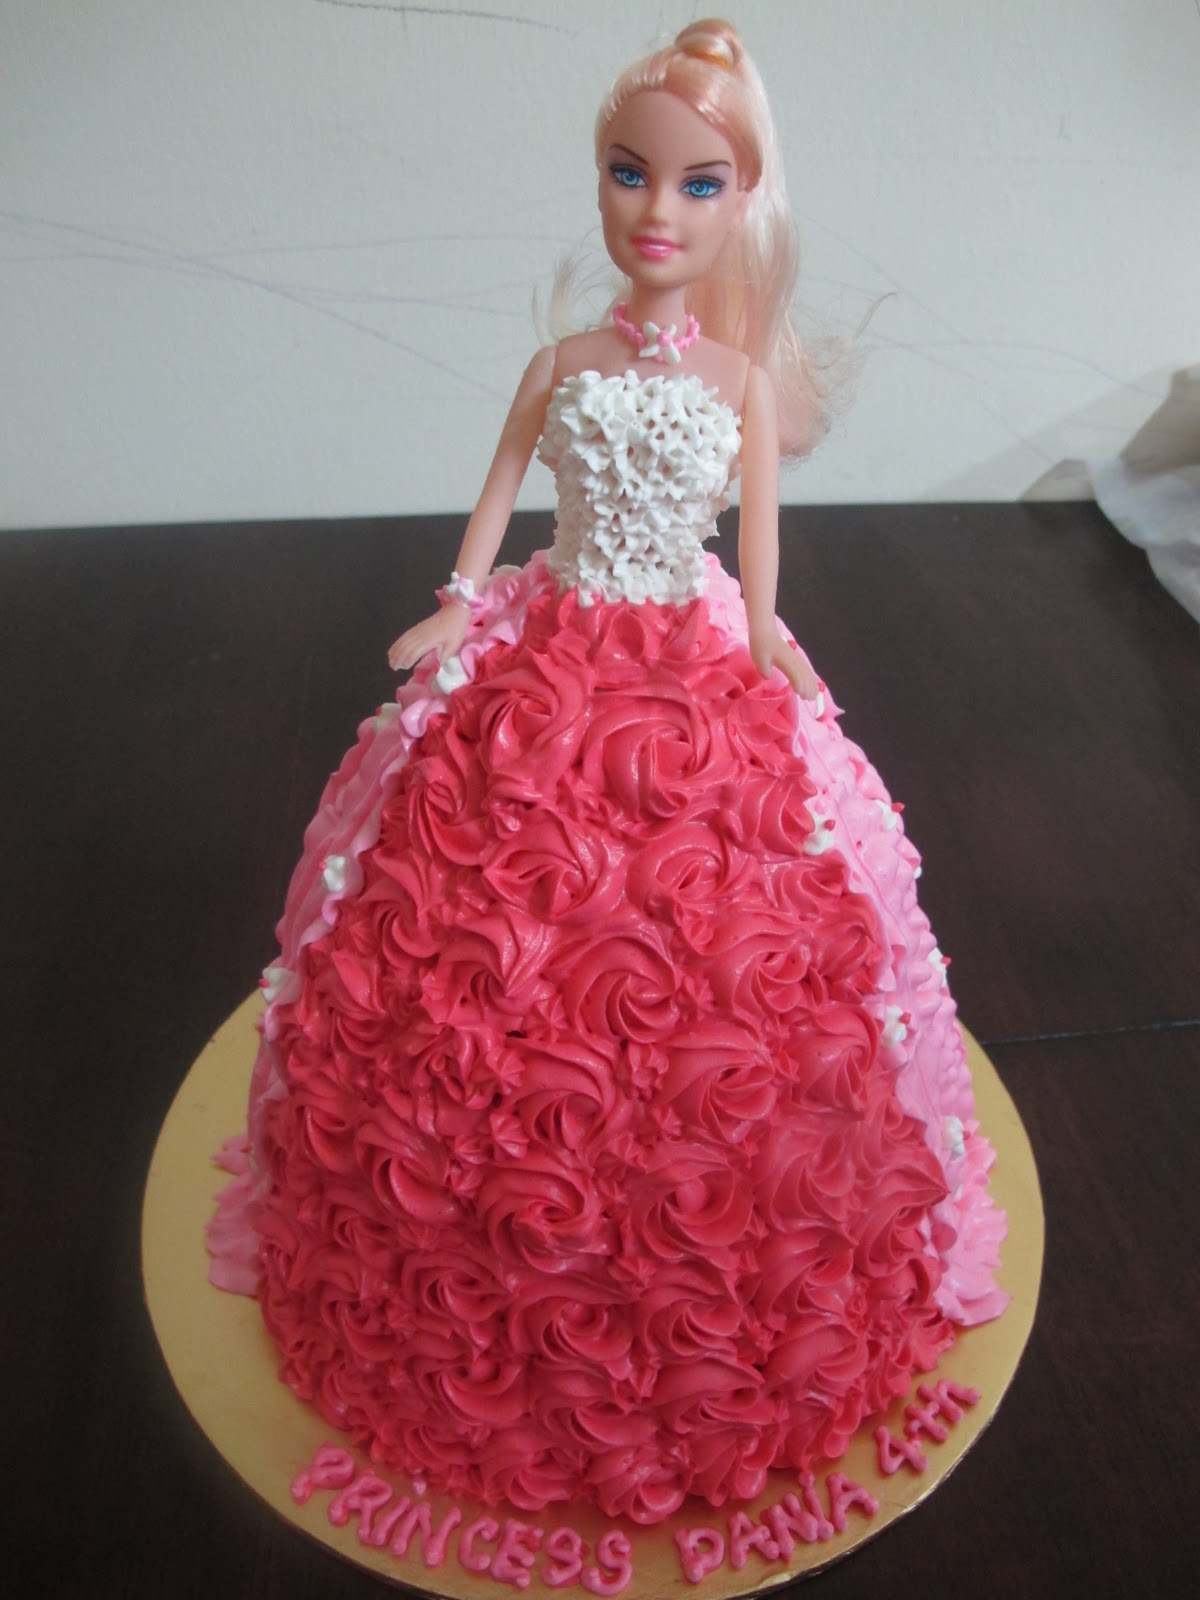 Doll Cake Images With Name : Shugarholic: barbie doll cake & Angry Bird Cake